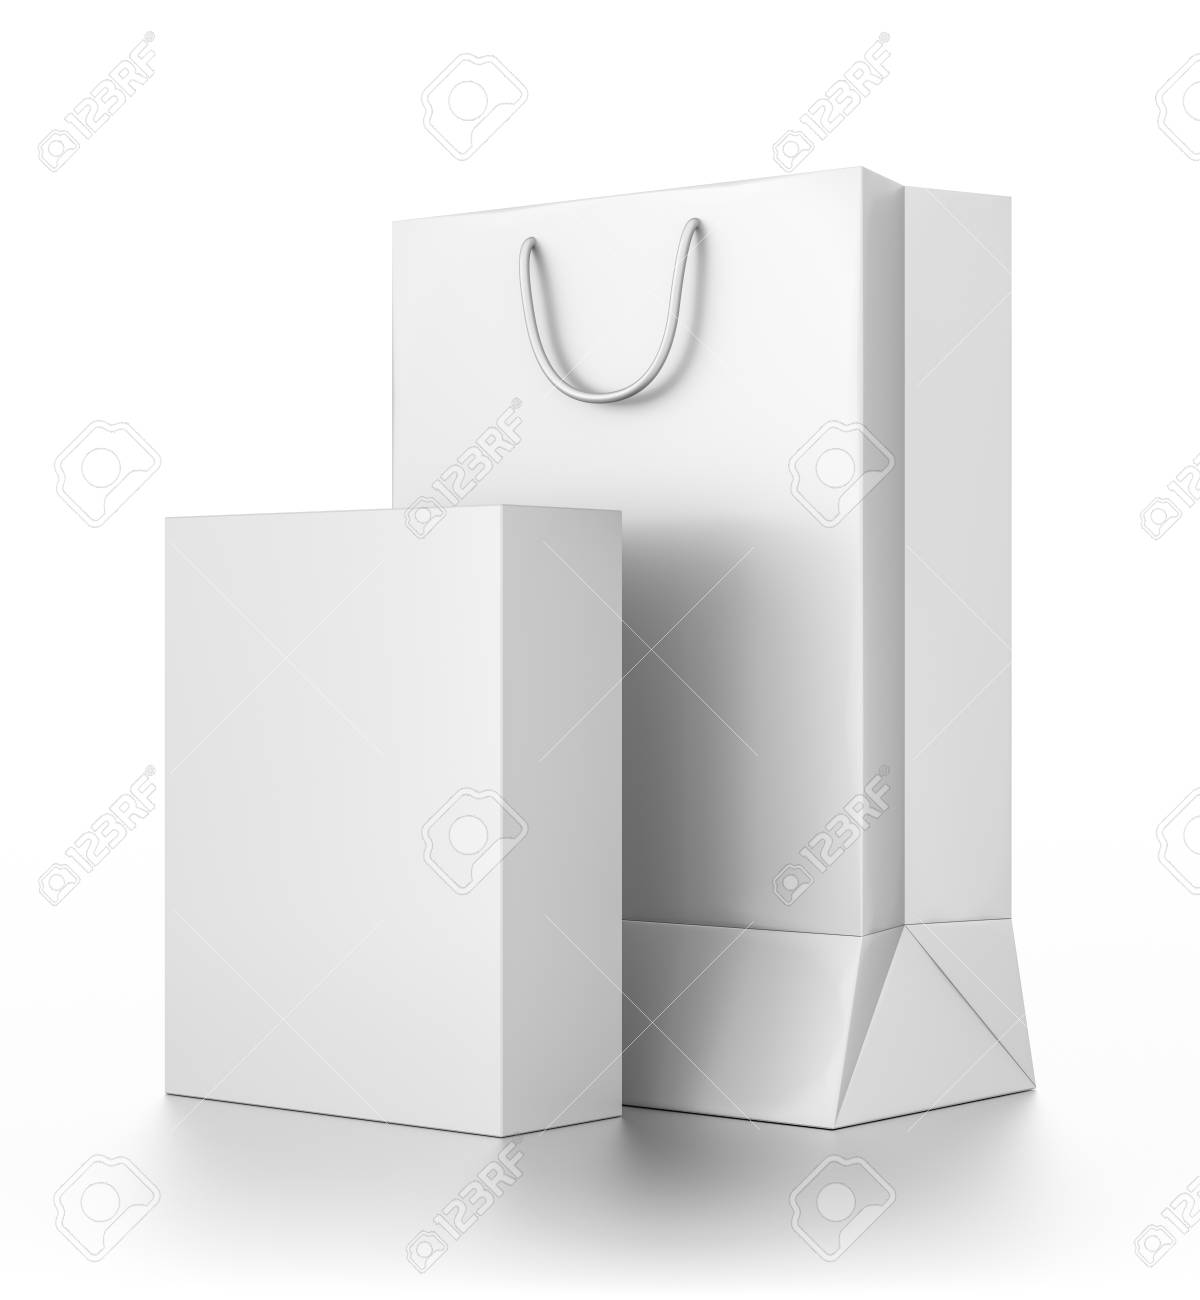 423e246900 White vertical rectangle bag and box from front side angle. 3D illustration  isolated on white